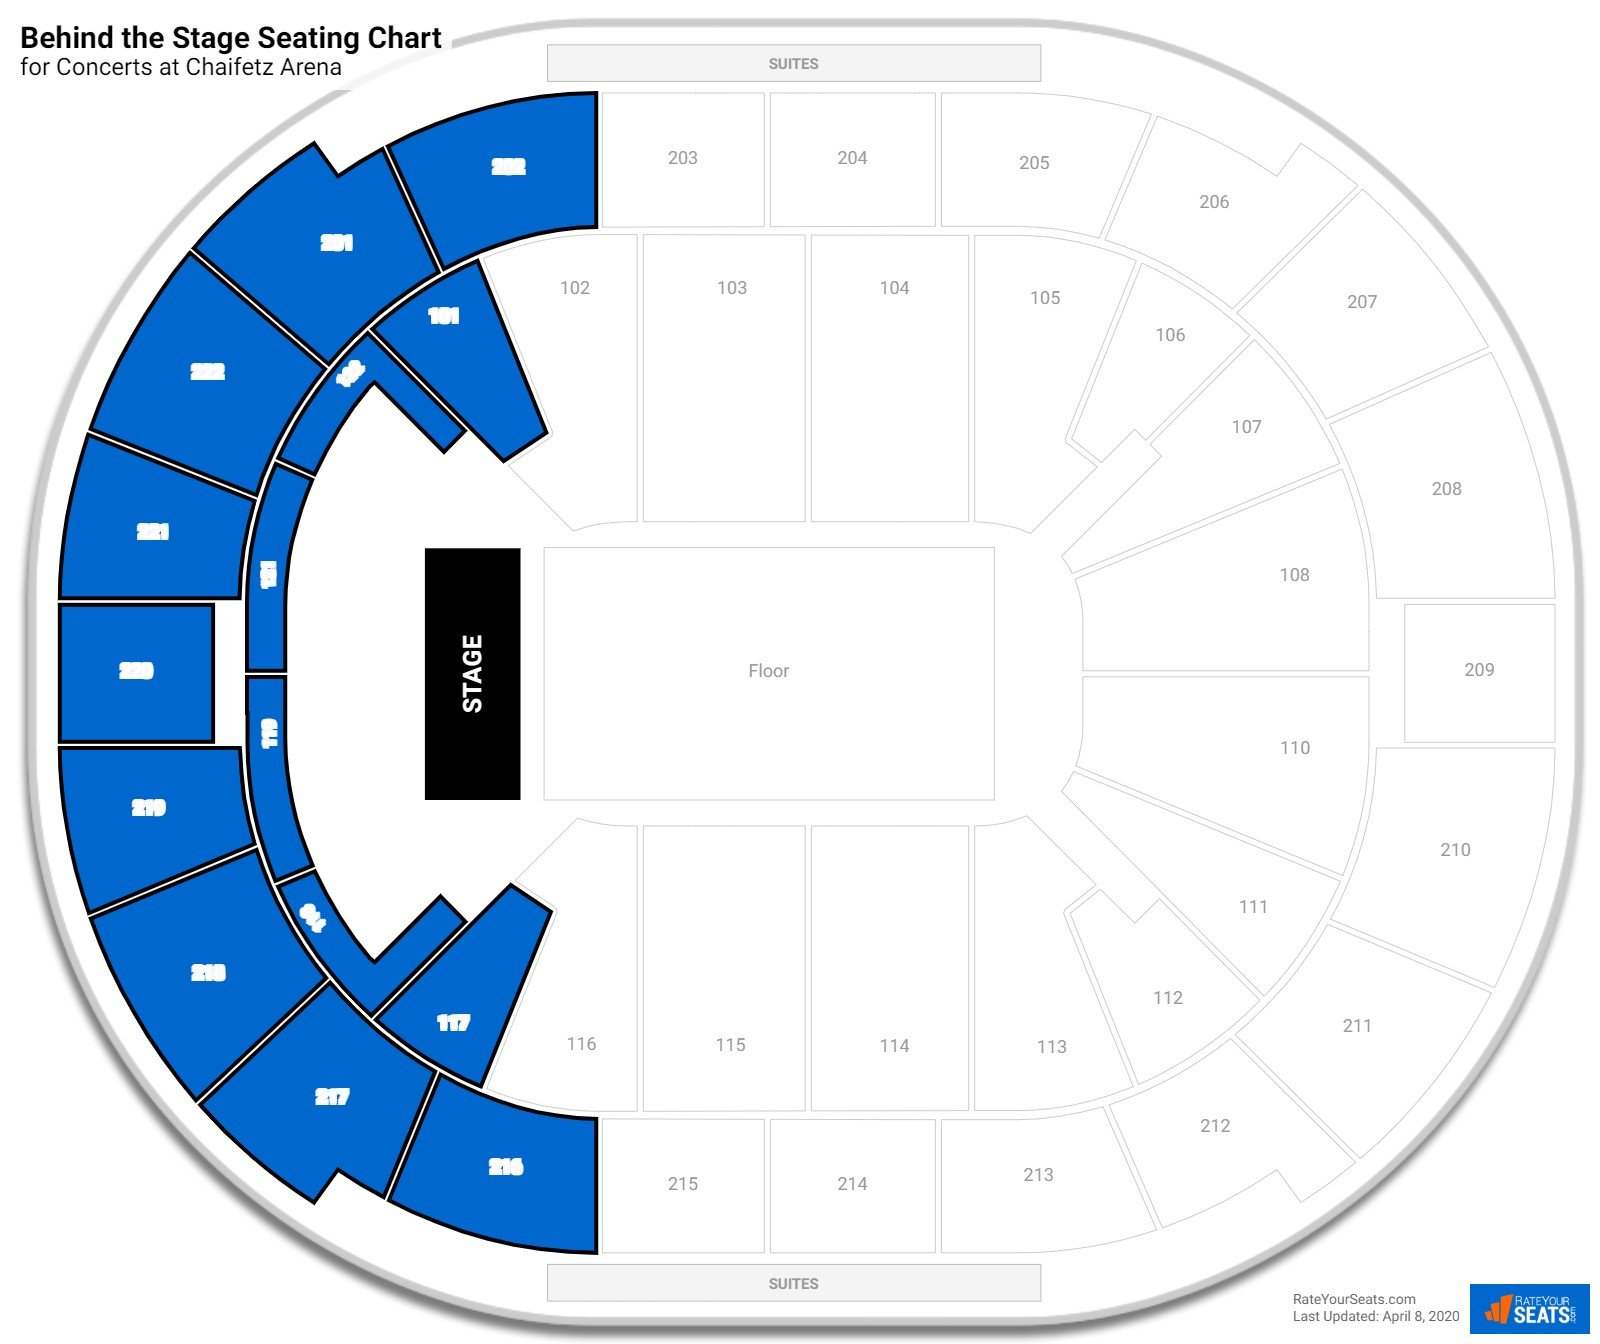 chaifetz arena concert seating guide